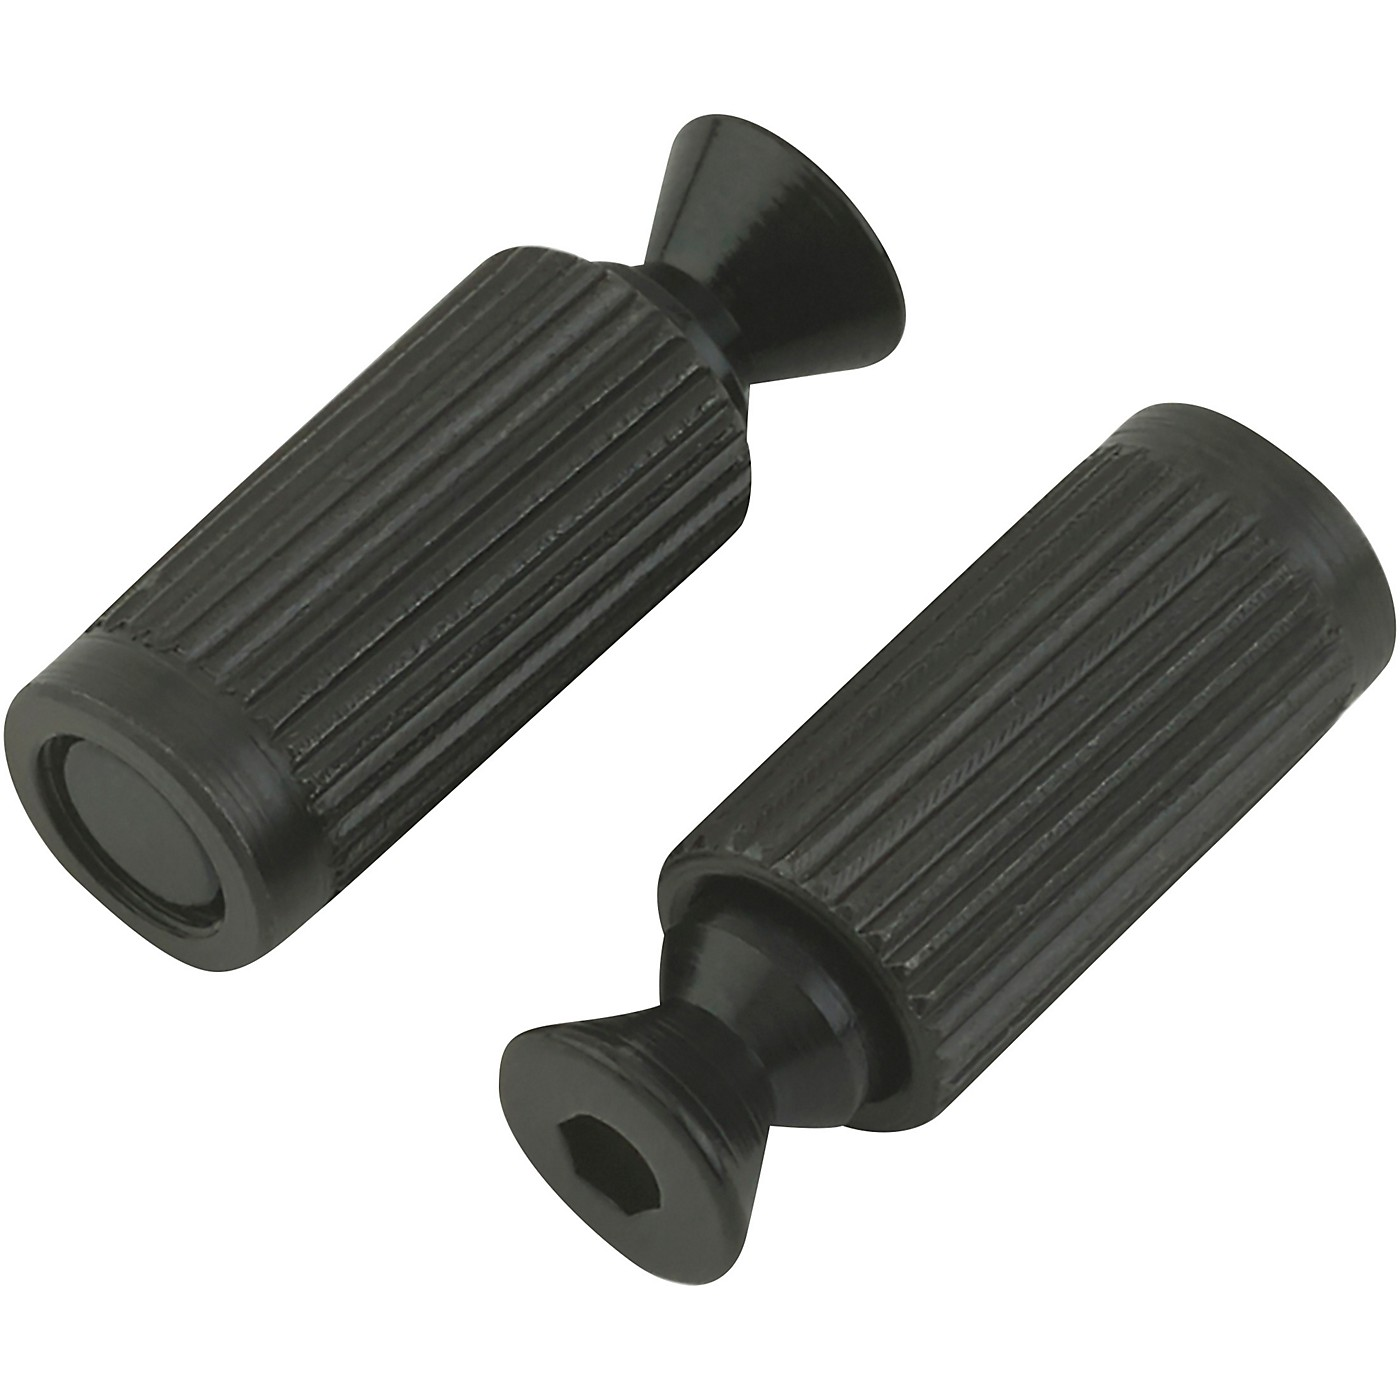 Floyd Rose 1000 Series/Special Mounting Studs & Inserts, Black (Set of 2) thumbnail